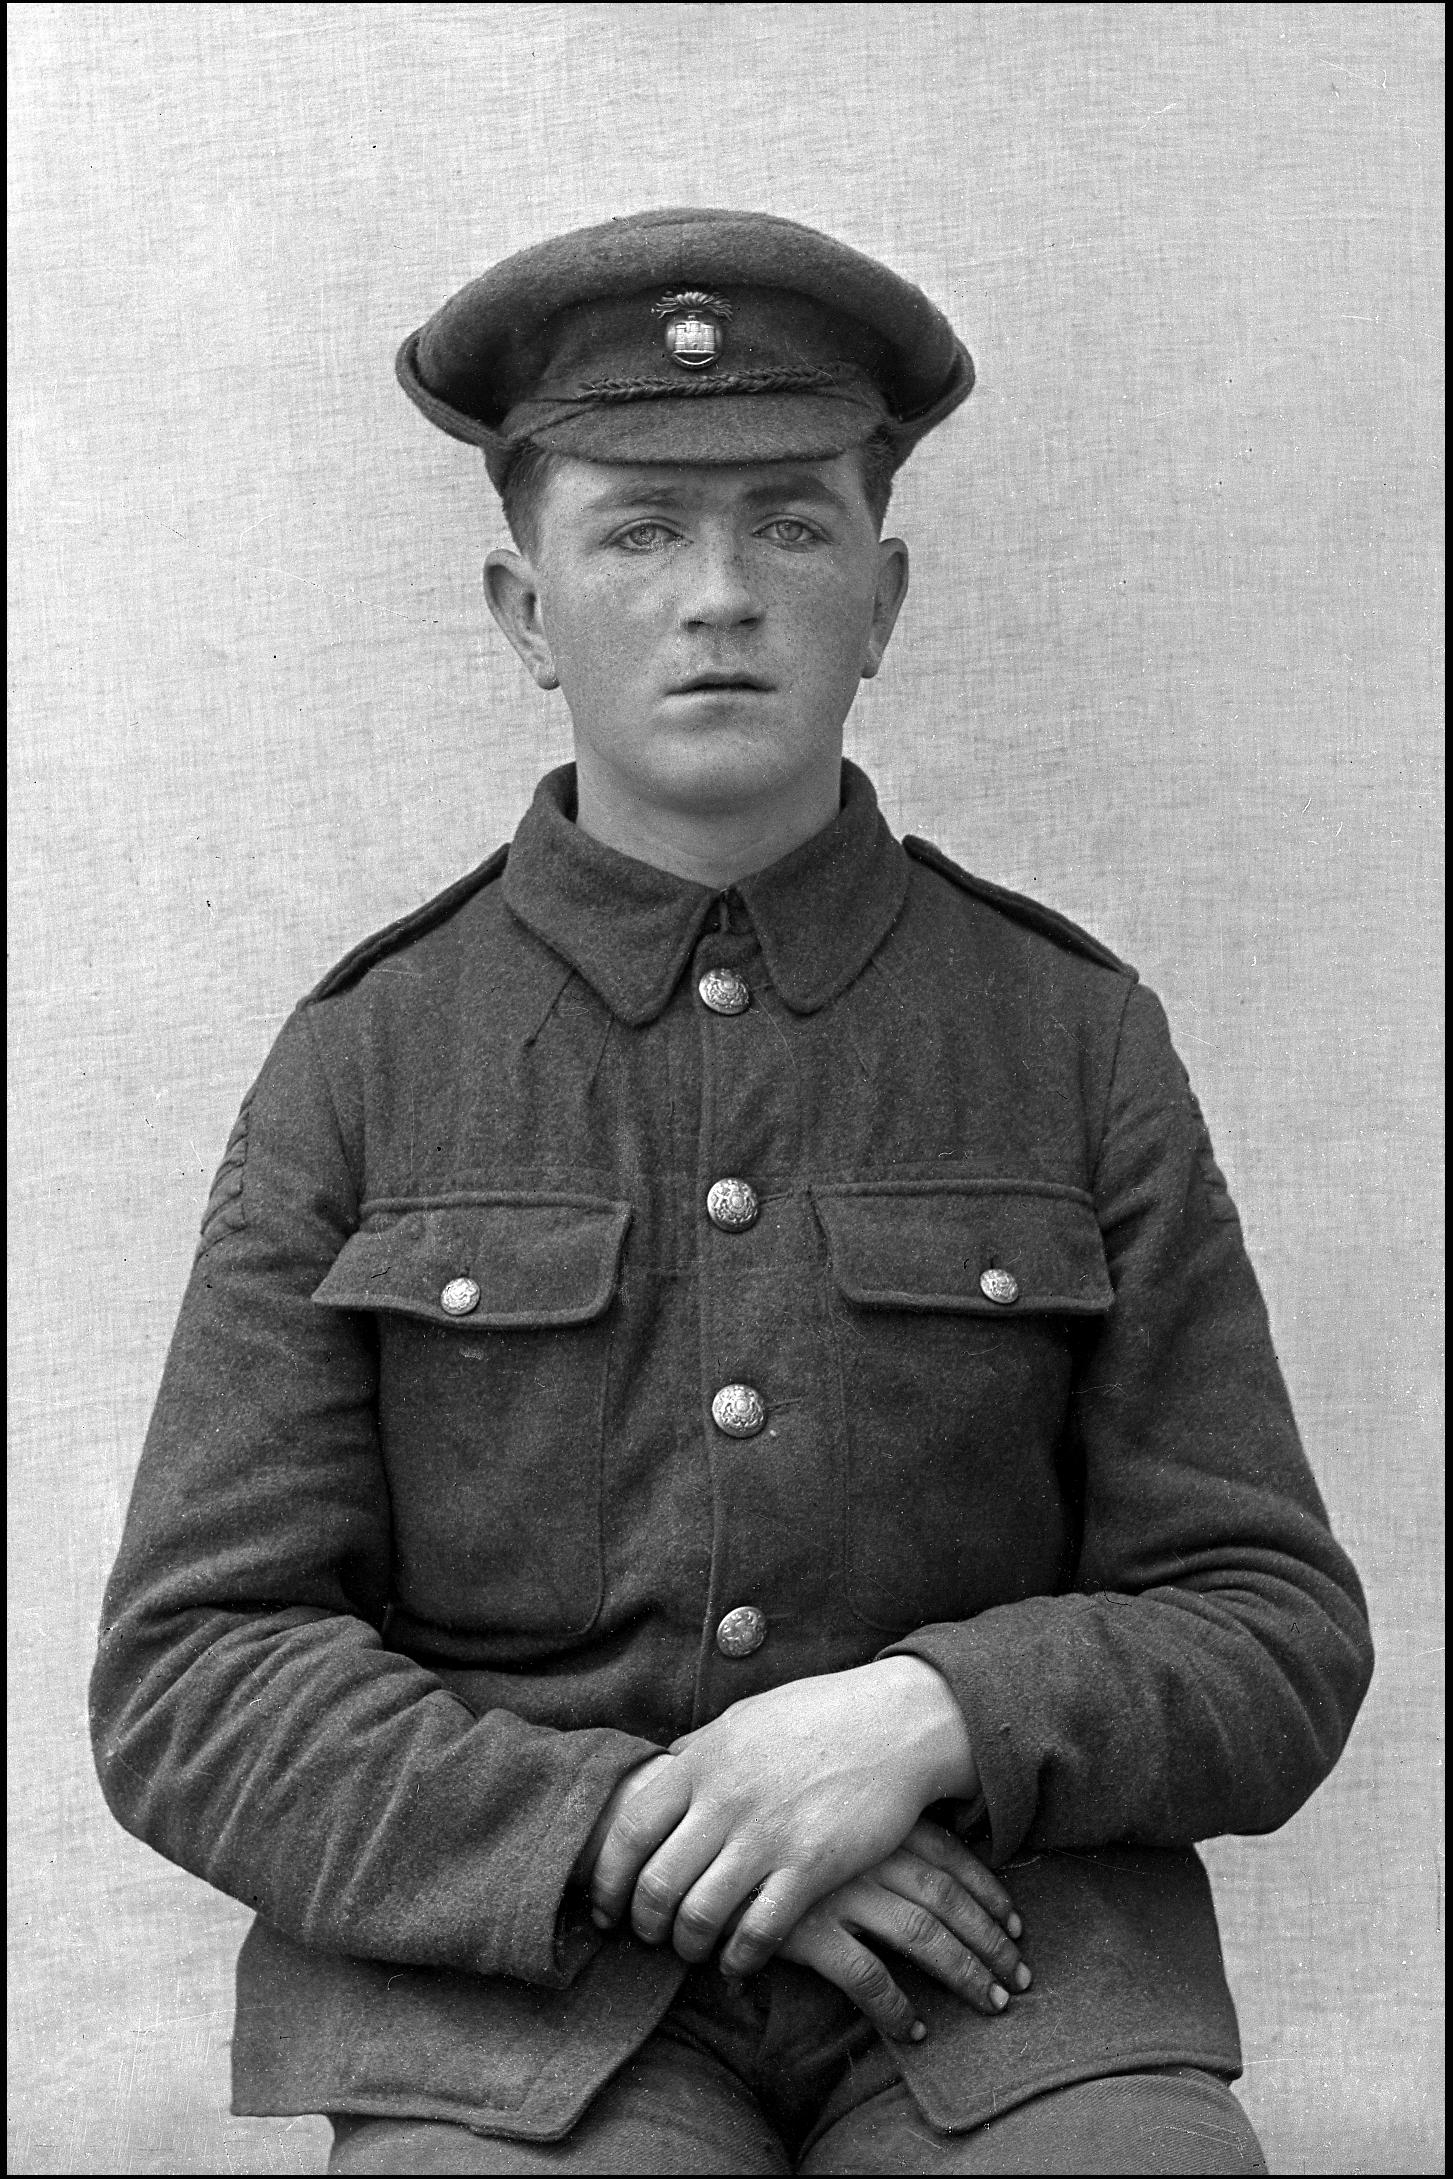 Somme selfies: young Irish fusilier from the 'skins' | The Independentindependent_brand_ident_LOGOUntitled